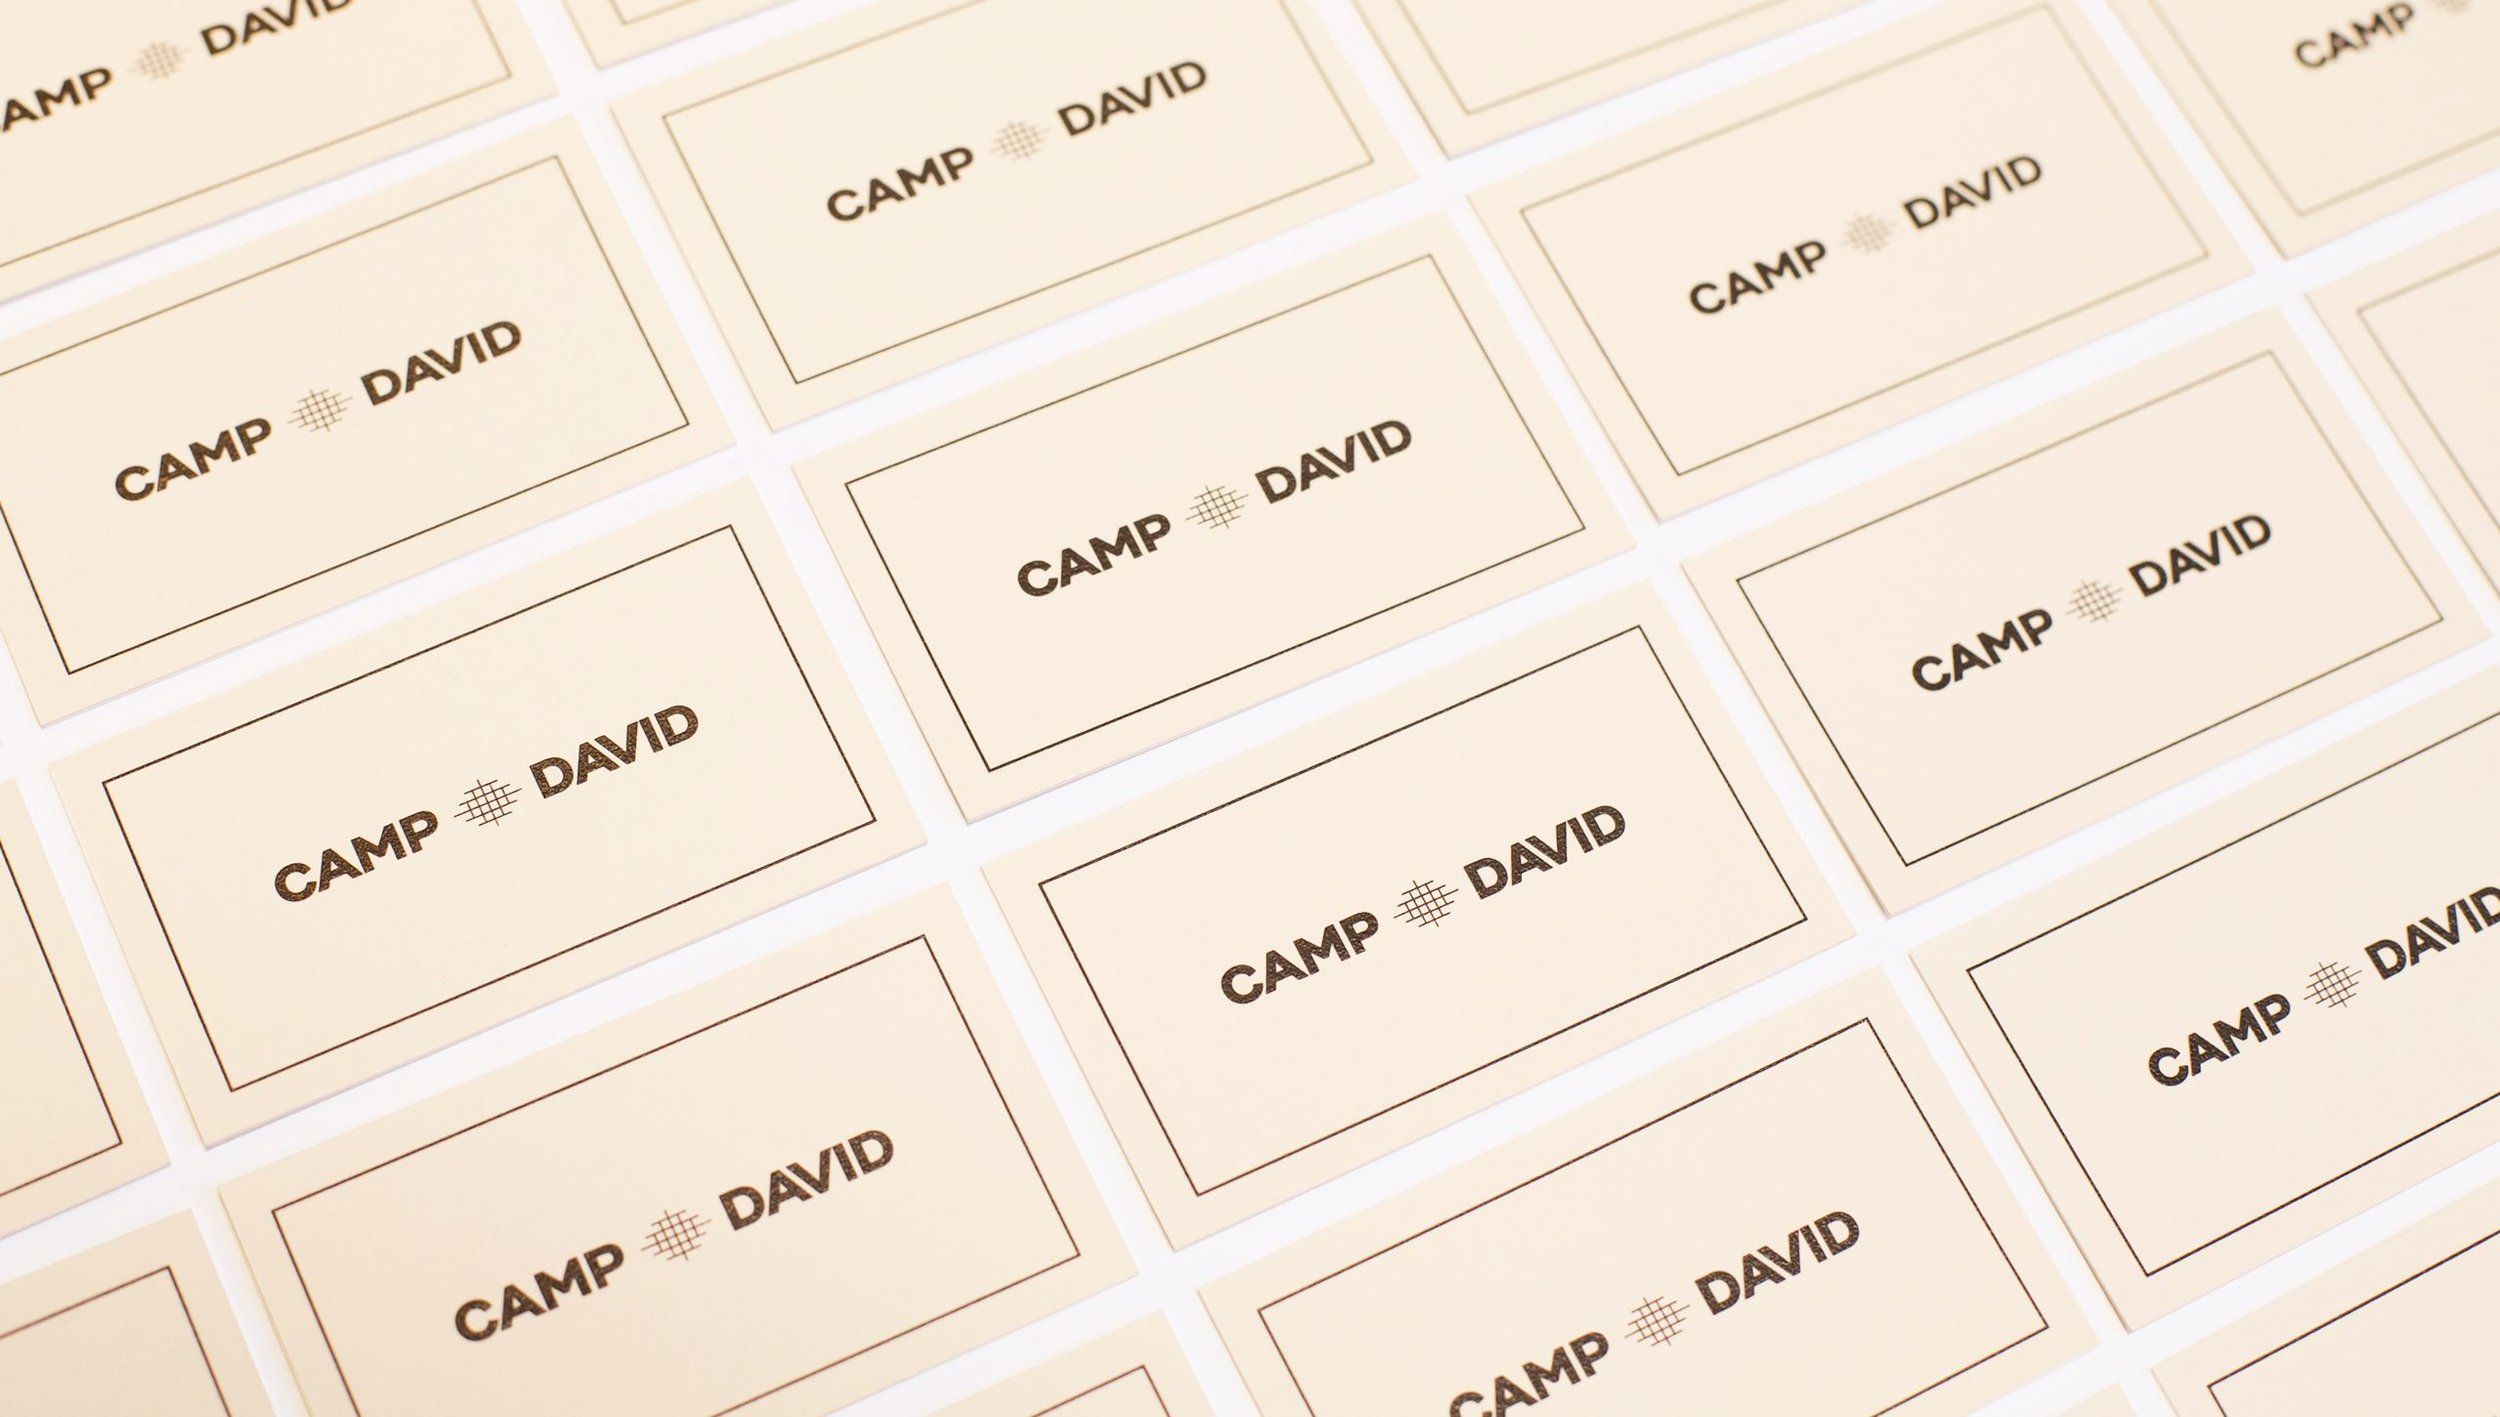 zmaic-milk-camp-david-collateral-print-design-business-cards.jpg